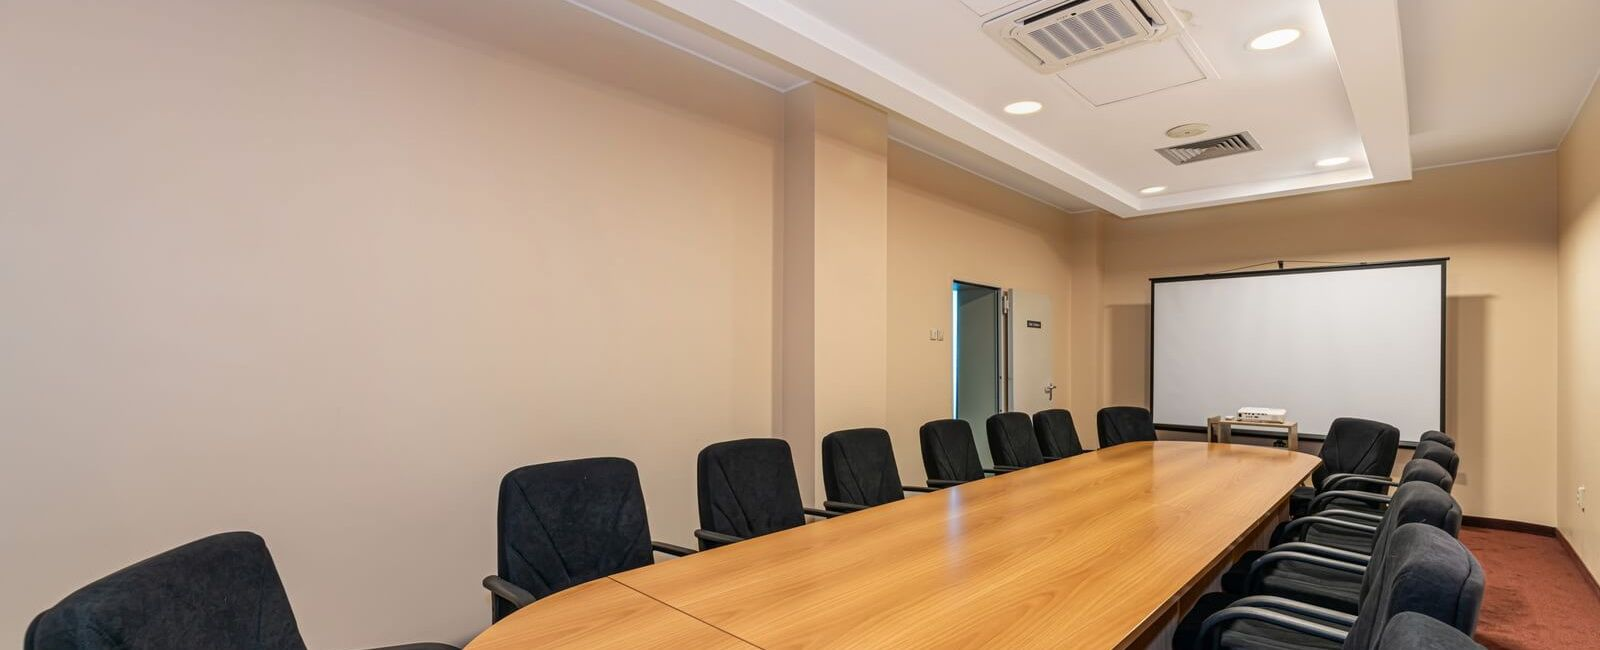 orion meeting room